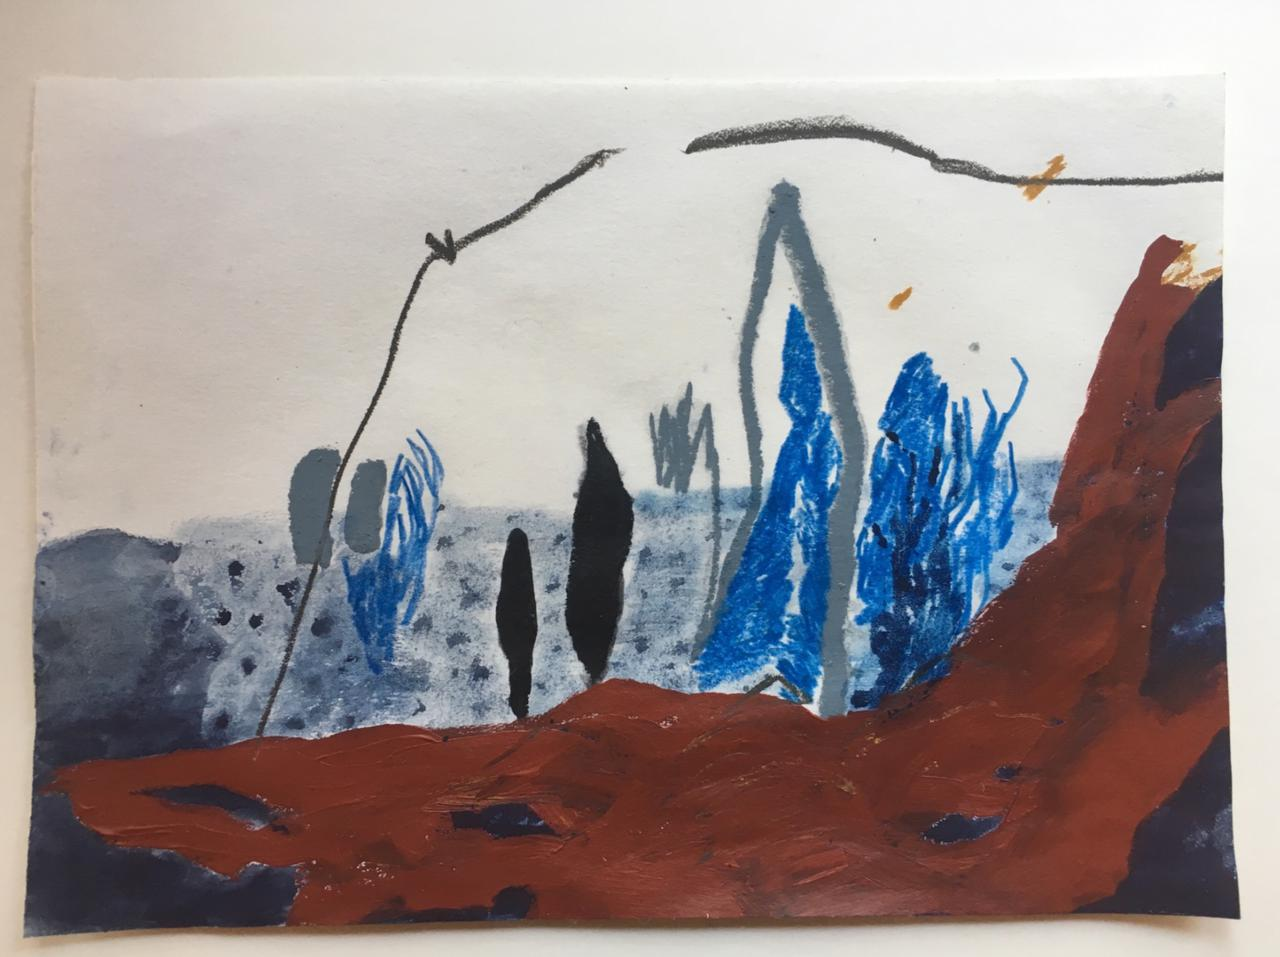 Jessica Fertonani Cooke, Occupied Landscapes 3, 21 x 30 cm, acrylic pencil and oil pastel on paper